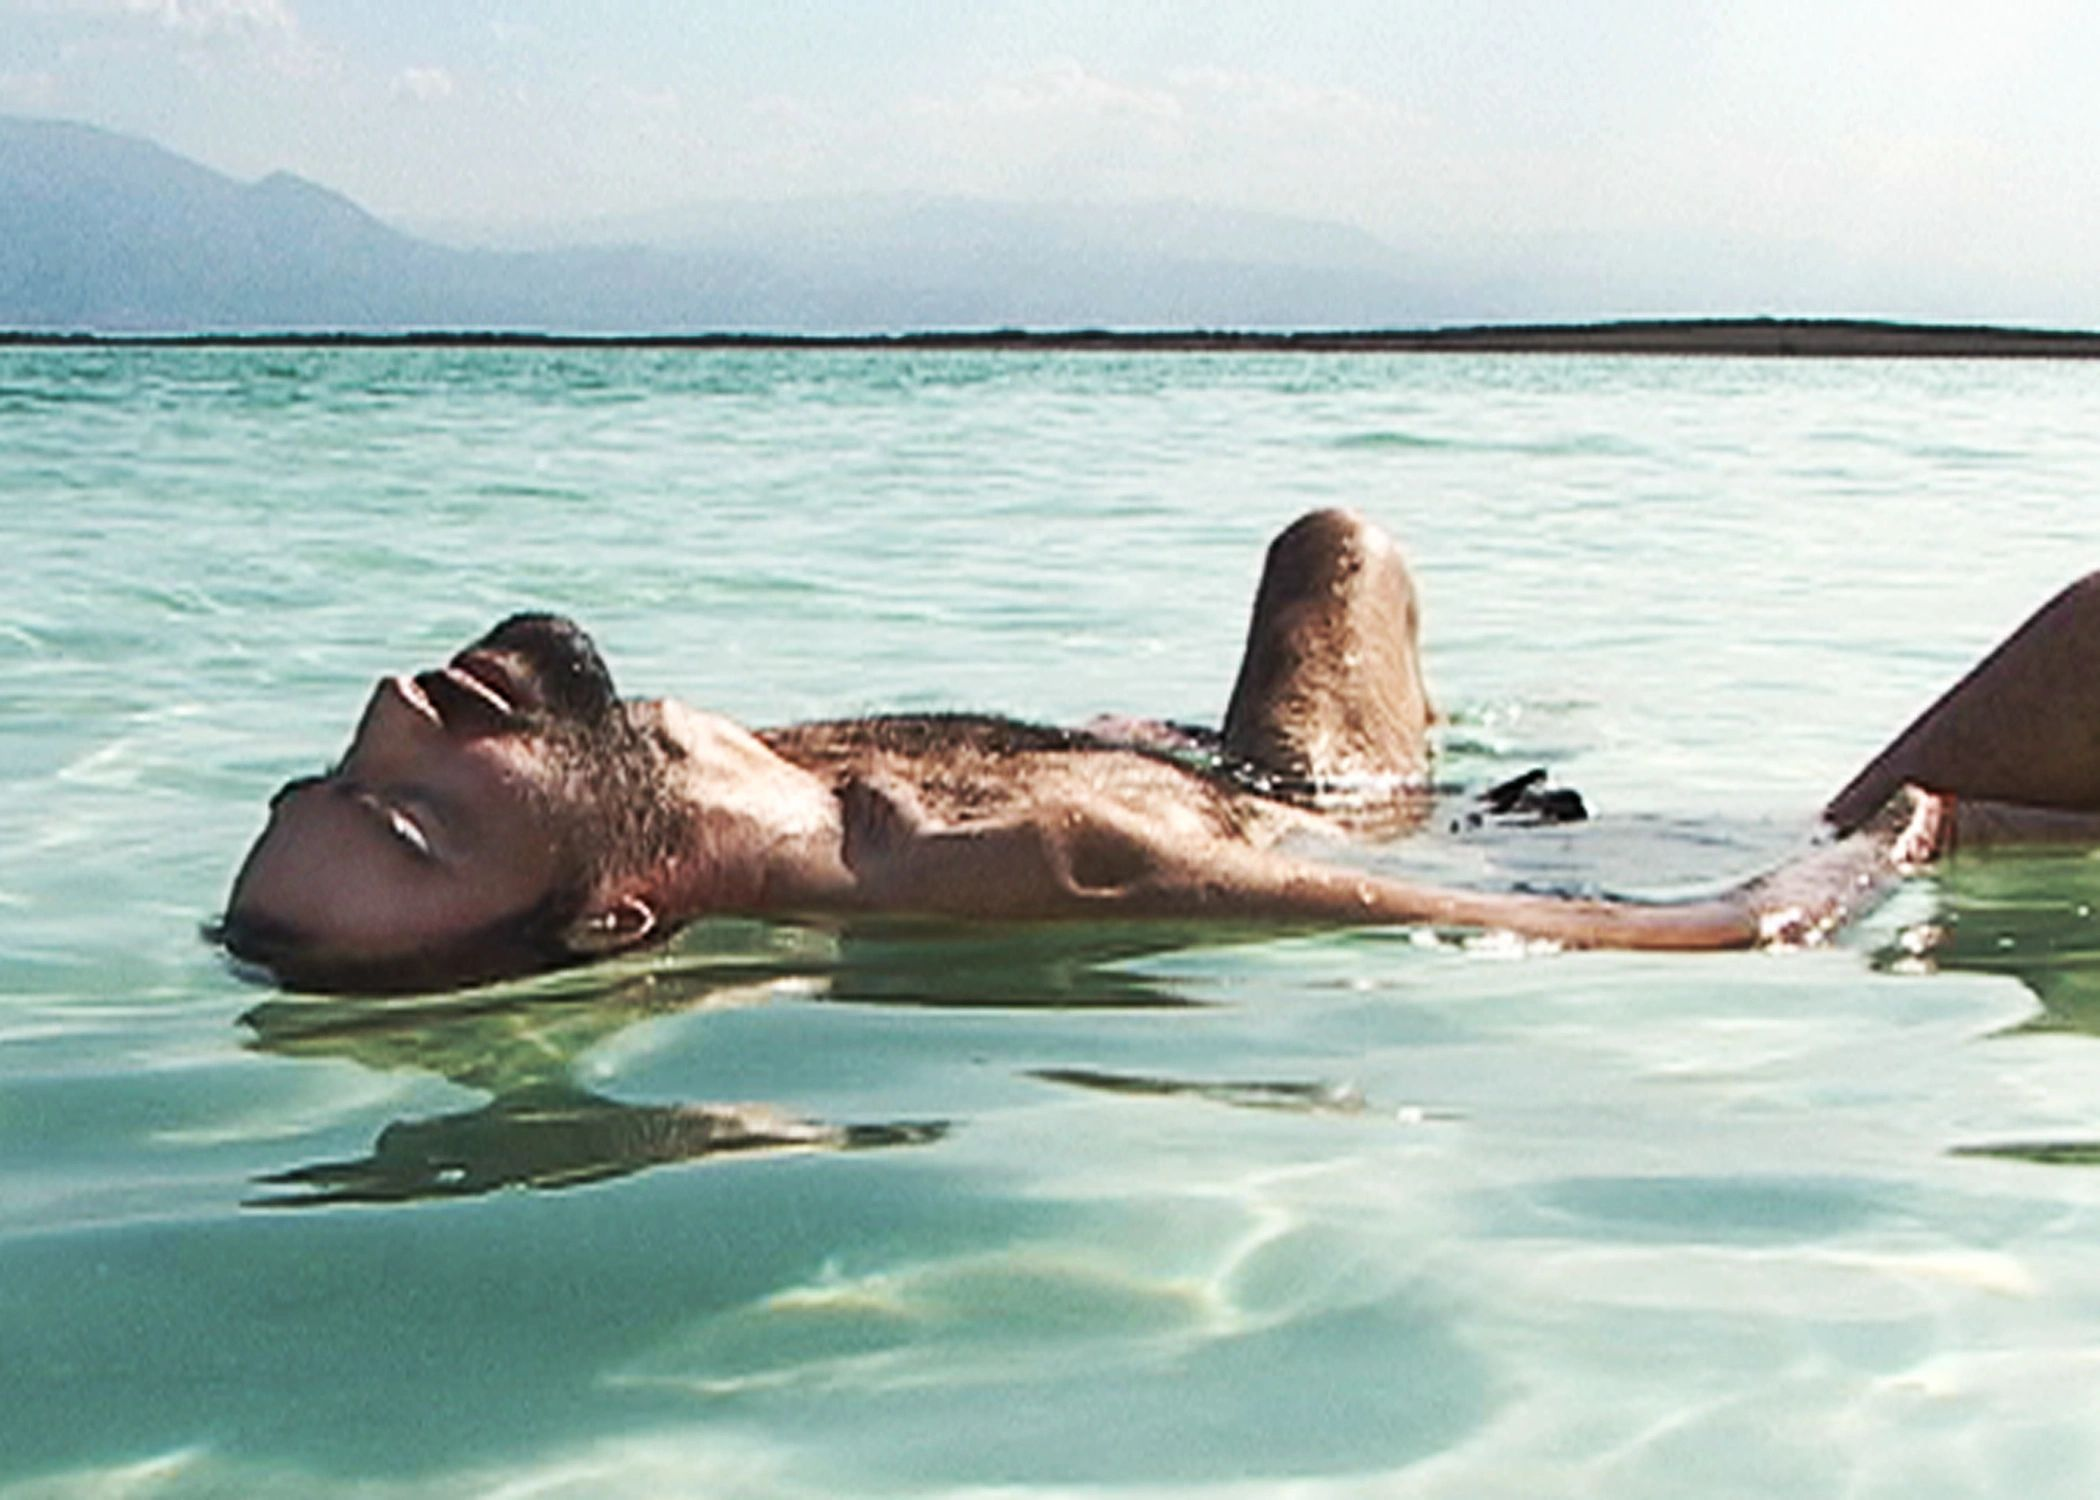 Ben Byer in the Dead Sea